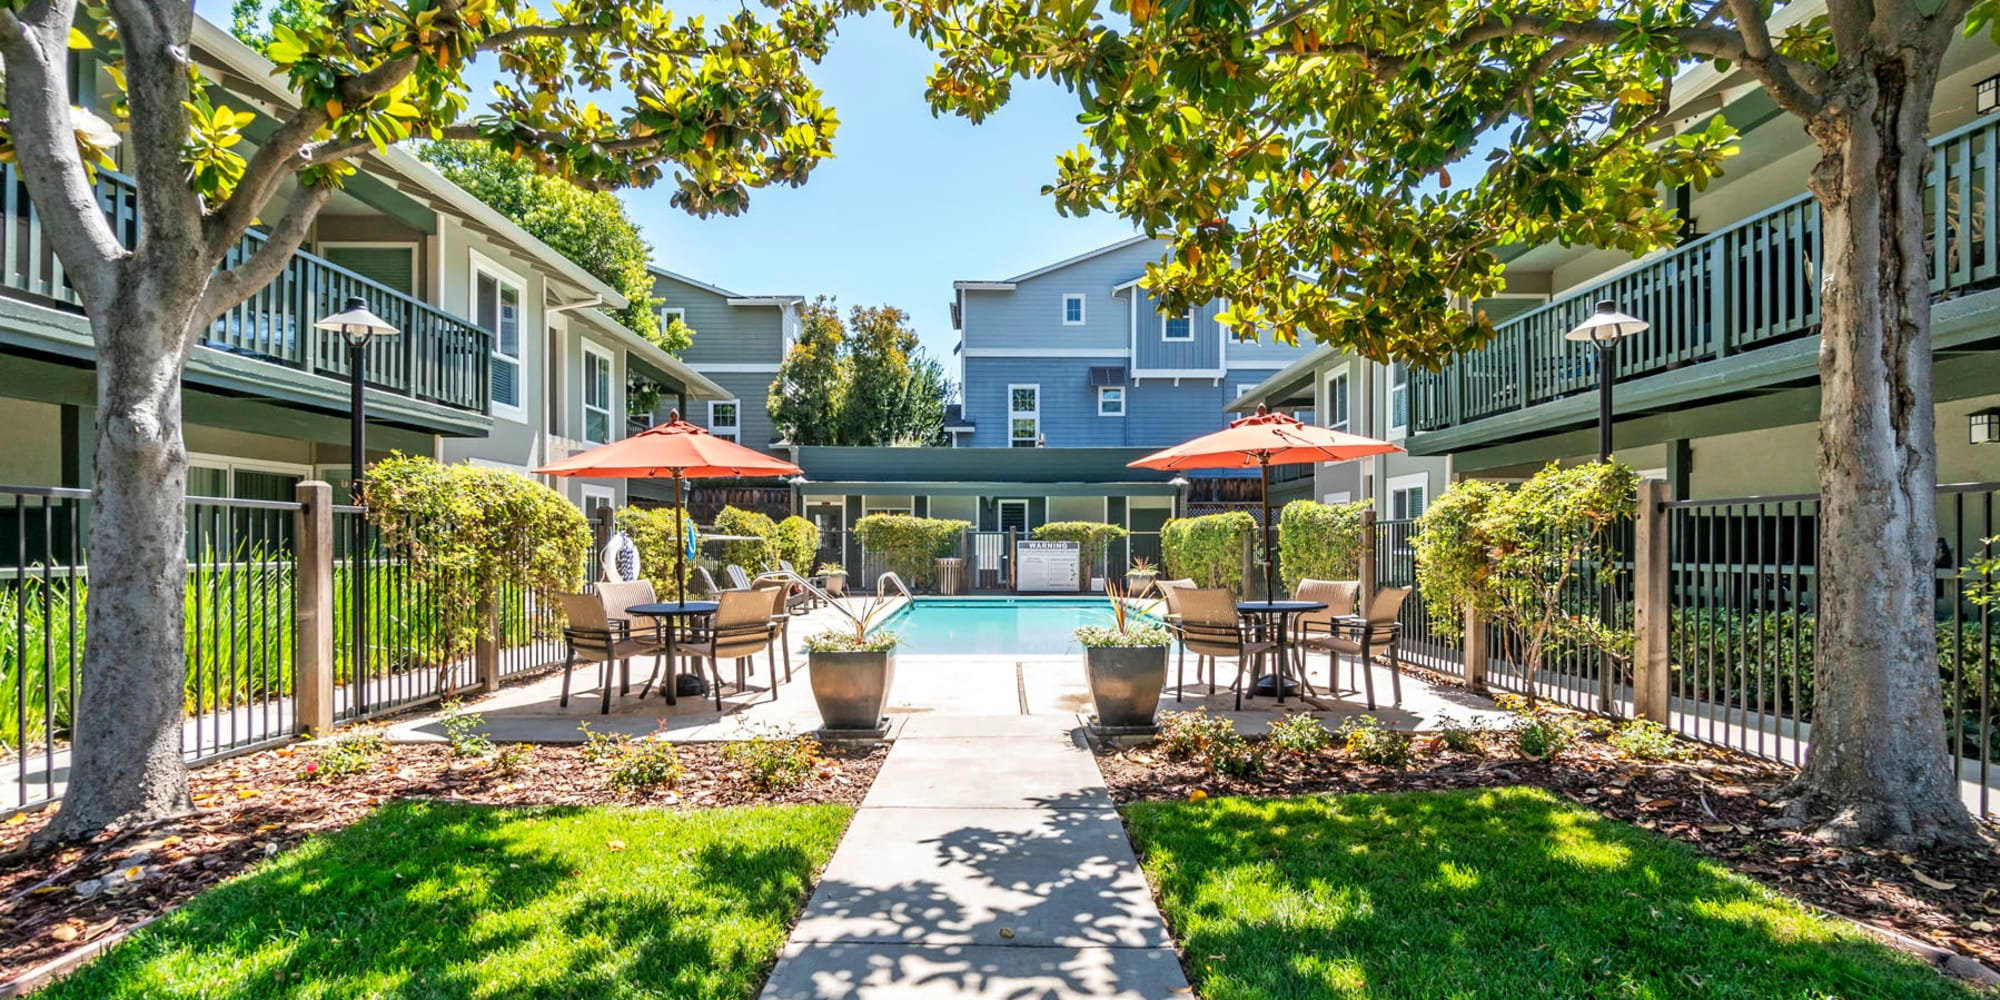 Shaded pathway leading to the swimming pool area at Pleasanton Glen Apartment Homes in Pleasanton, California